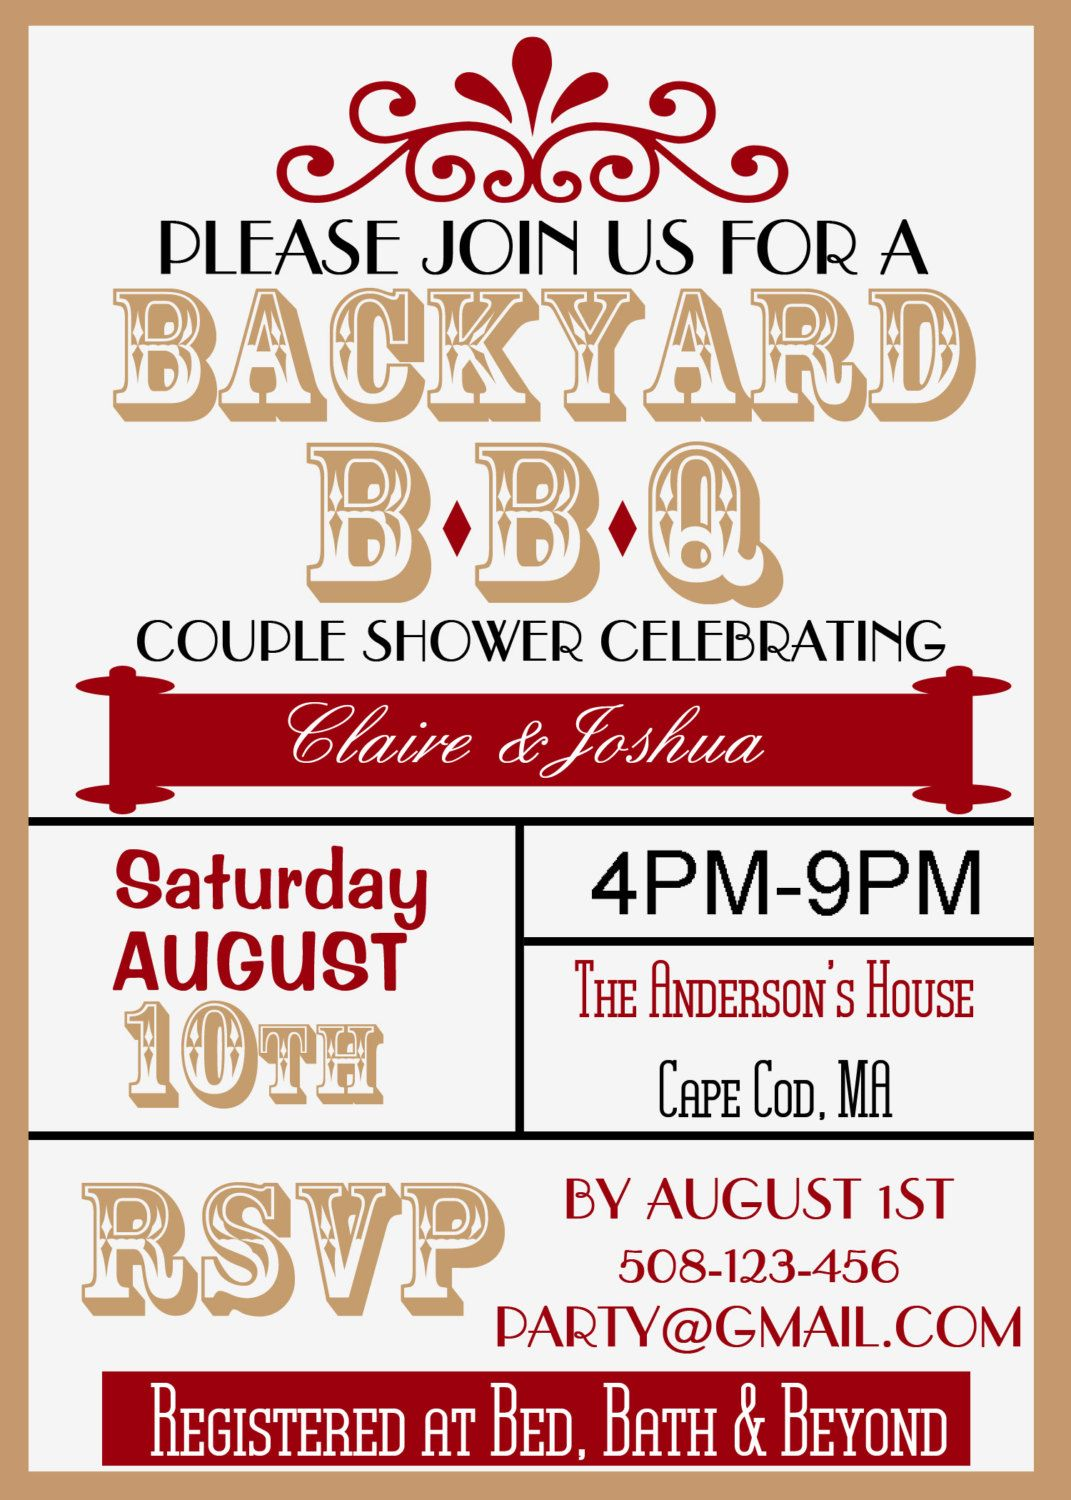 Backyard BBQ Couple Wedding Shower Invite - Vintage Look | Pinterest ...